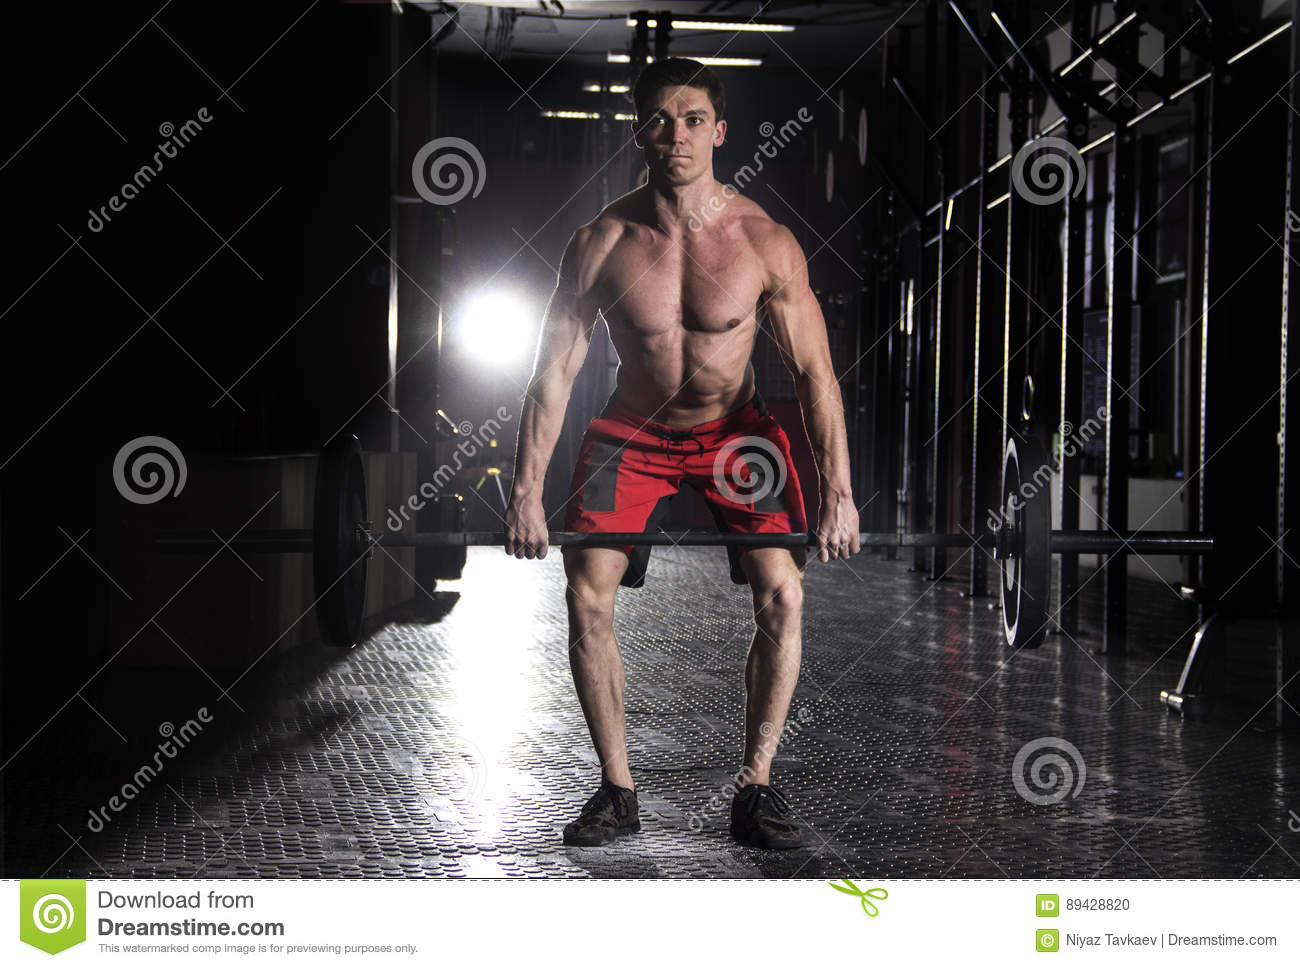 Muscular man lifting a barbell in crossfit gym.